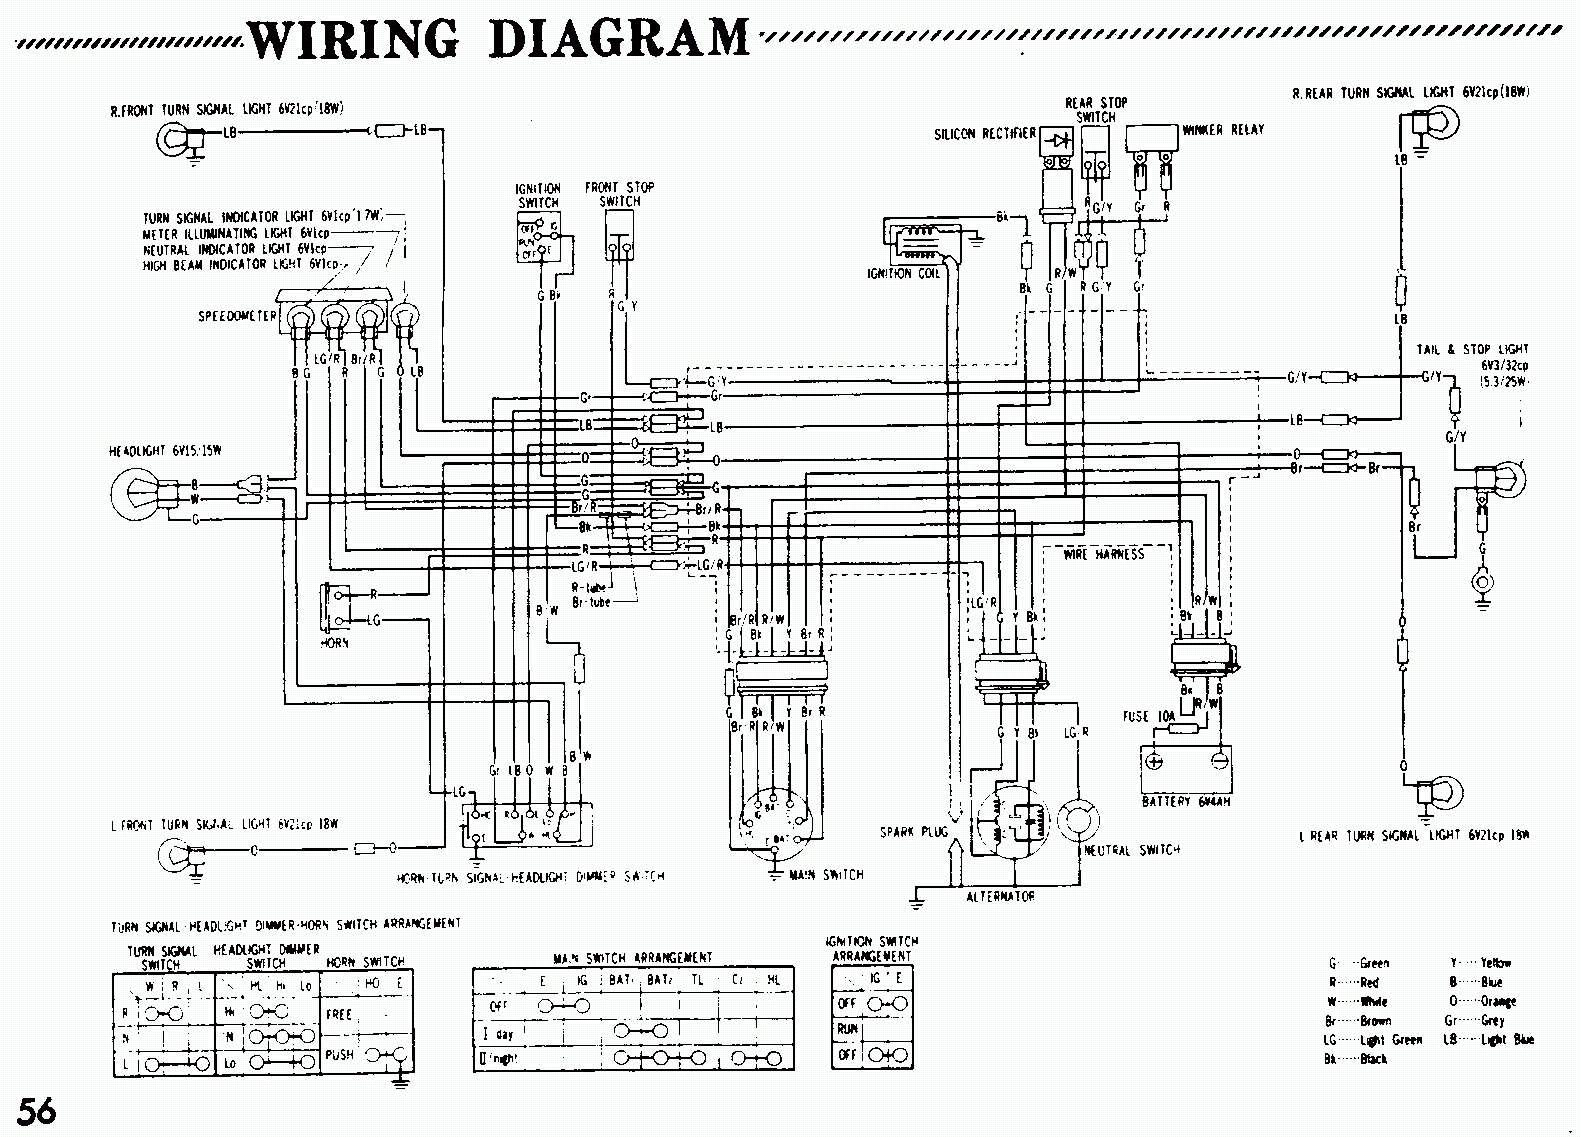 Wiring diagram honda z50 example electrical wiring diagram tbolt usa tech database tbolt usa llc rh tboltusa com wiring diagram honda z50a honda z50j1 wiring diagram swarovskicordoba Choice Image